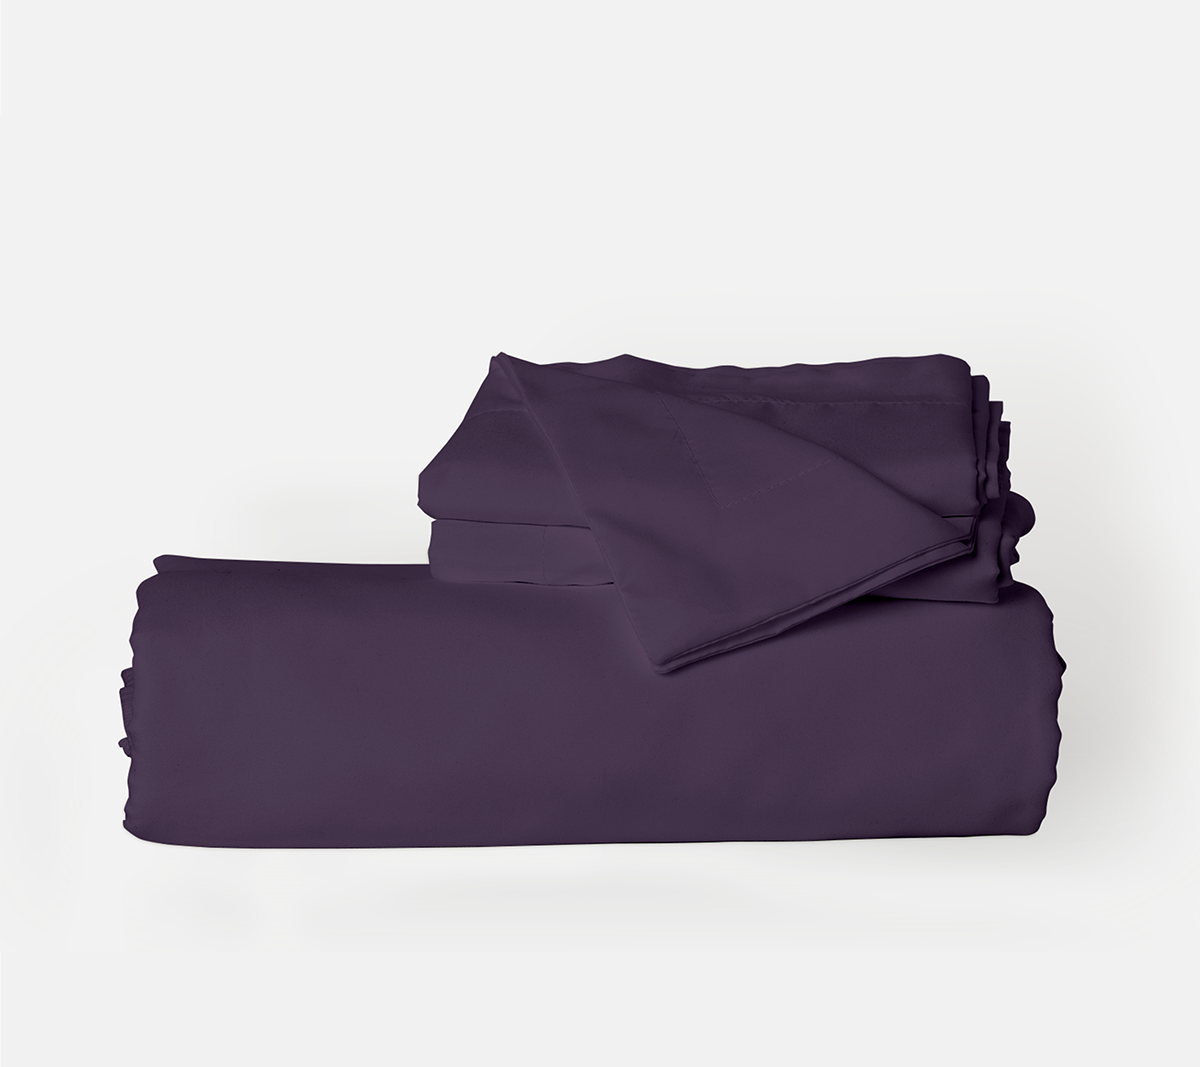 Eggplant Duvet Cover Set